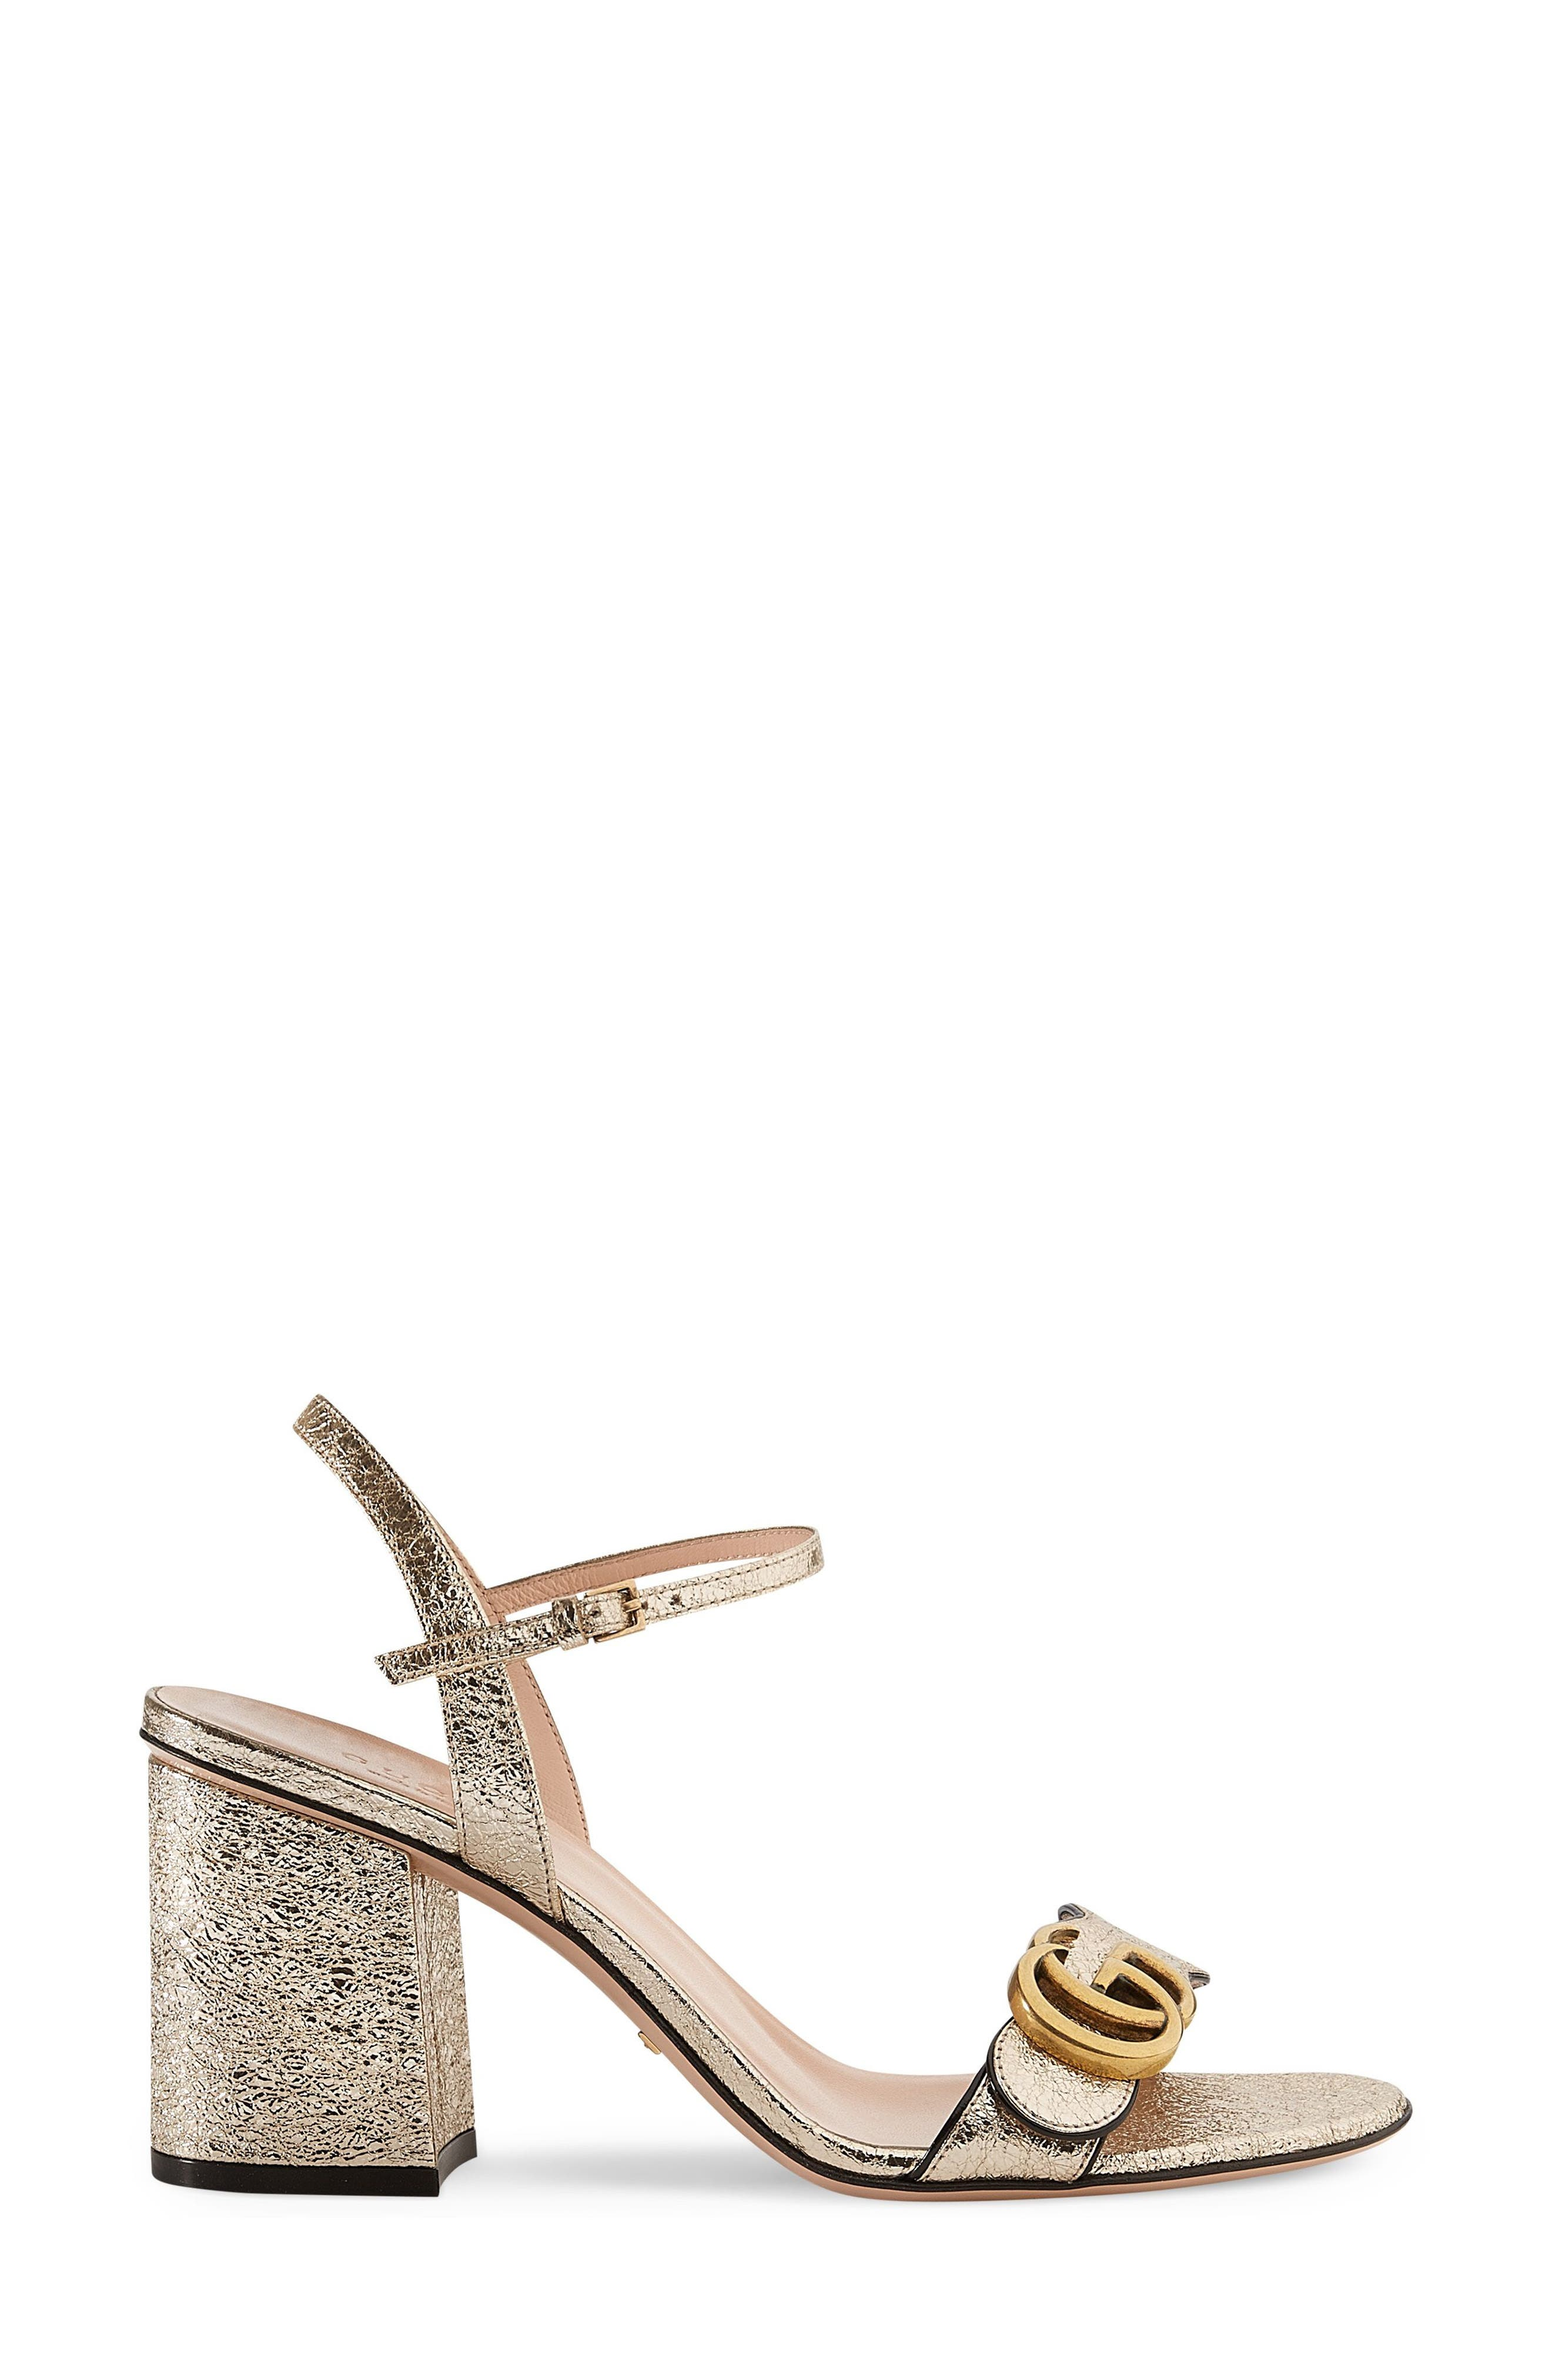 GG Marmont Sandal,                         Main,                         color, METALLIC GOLD